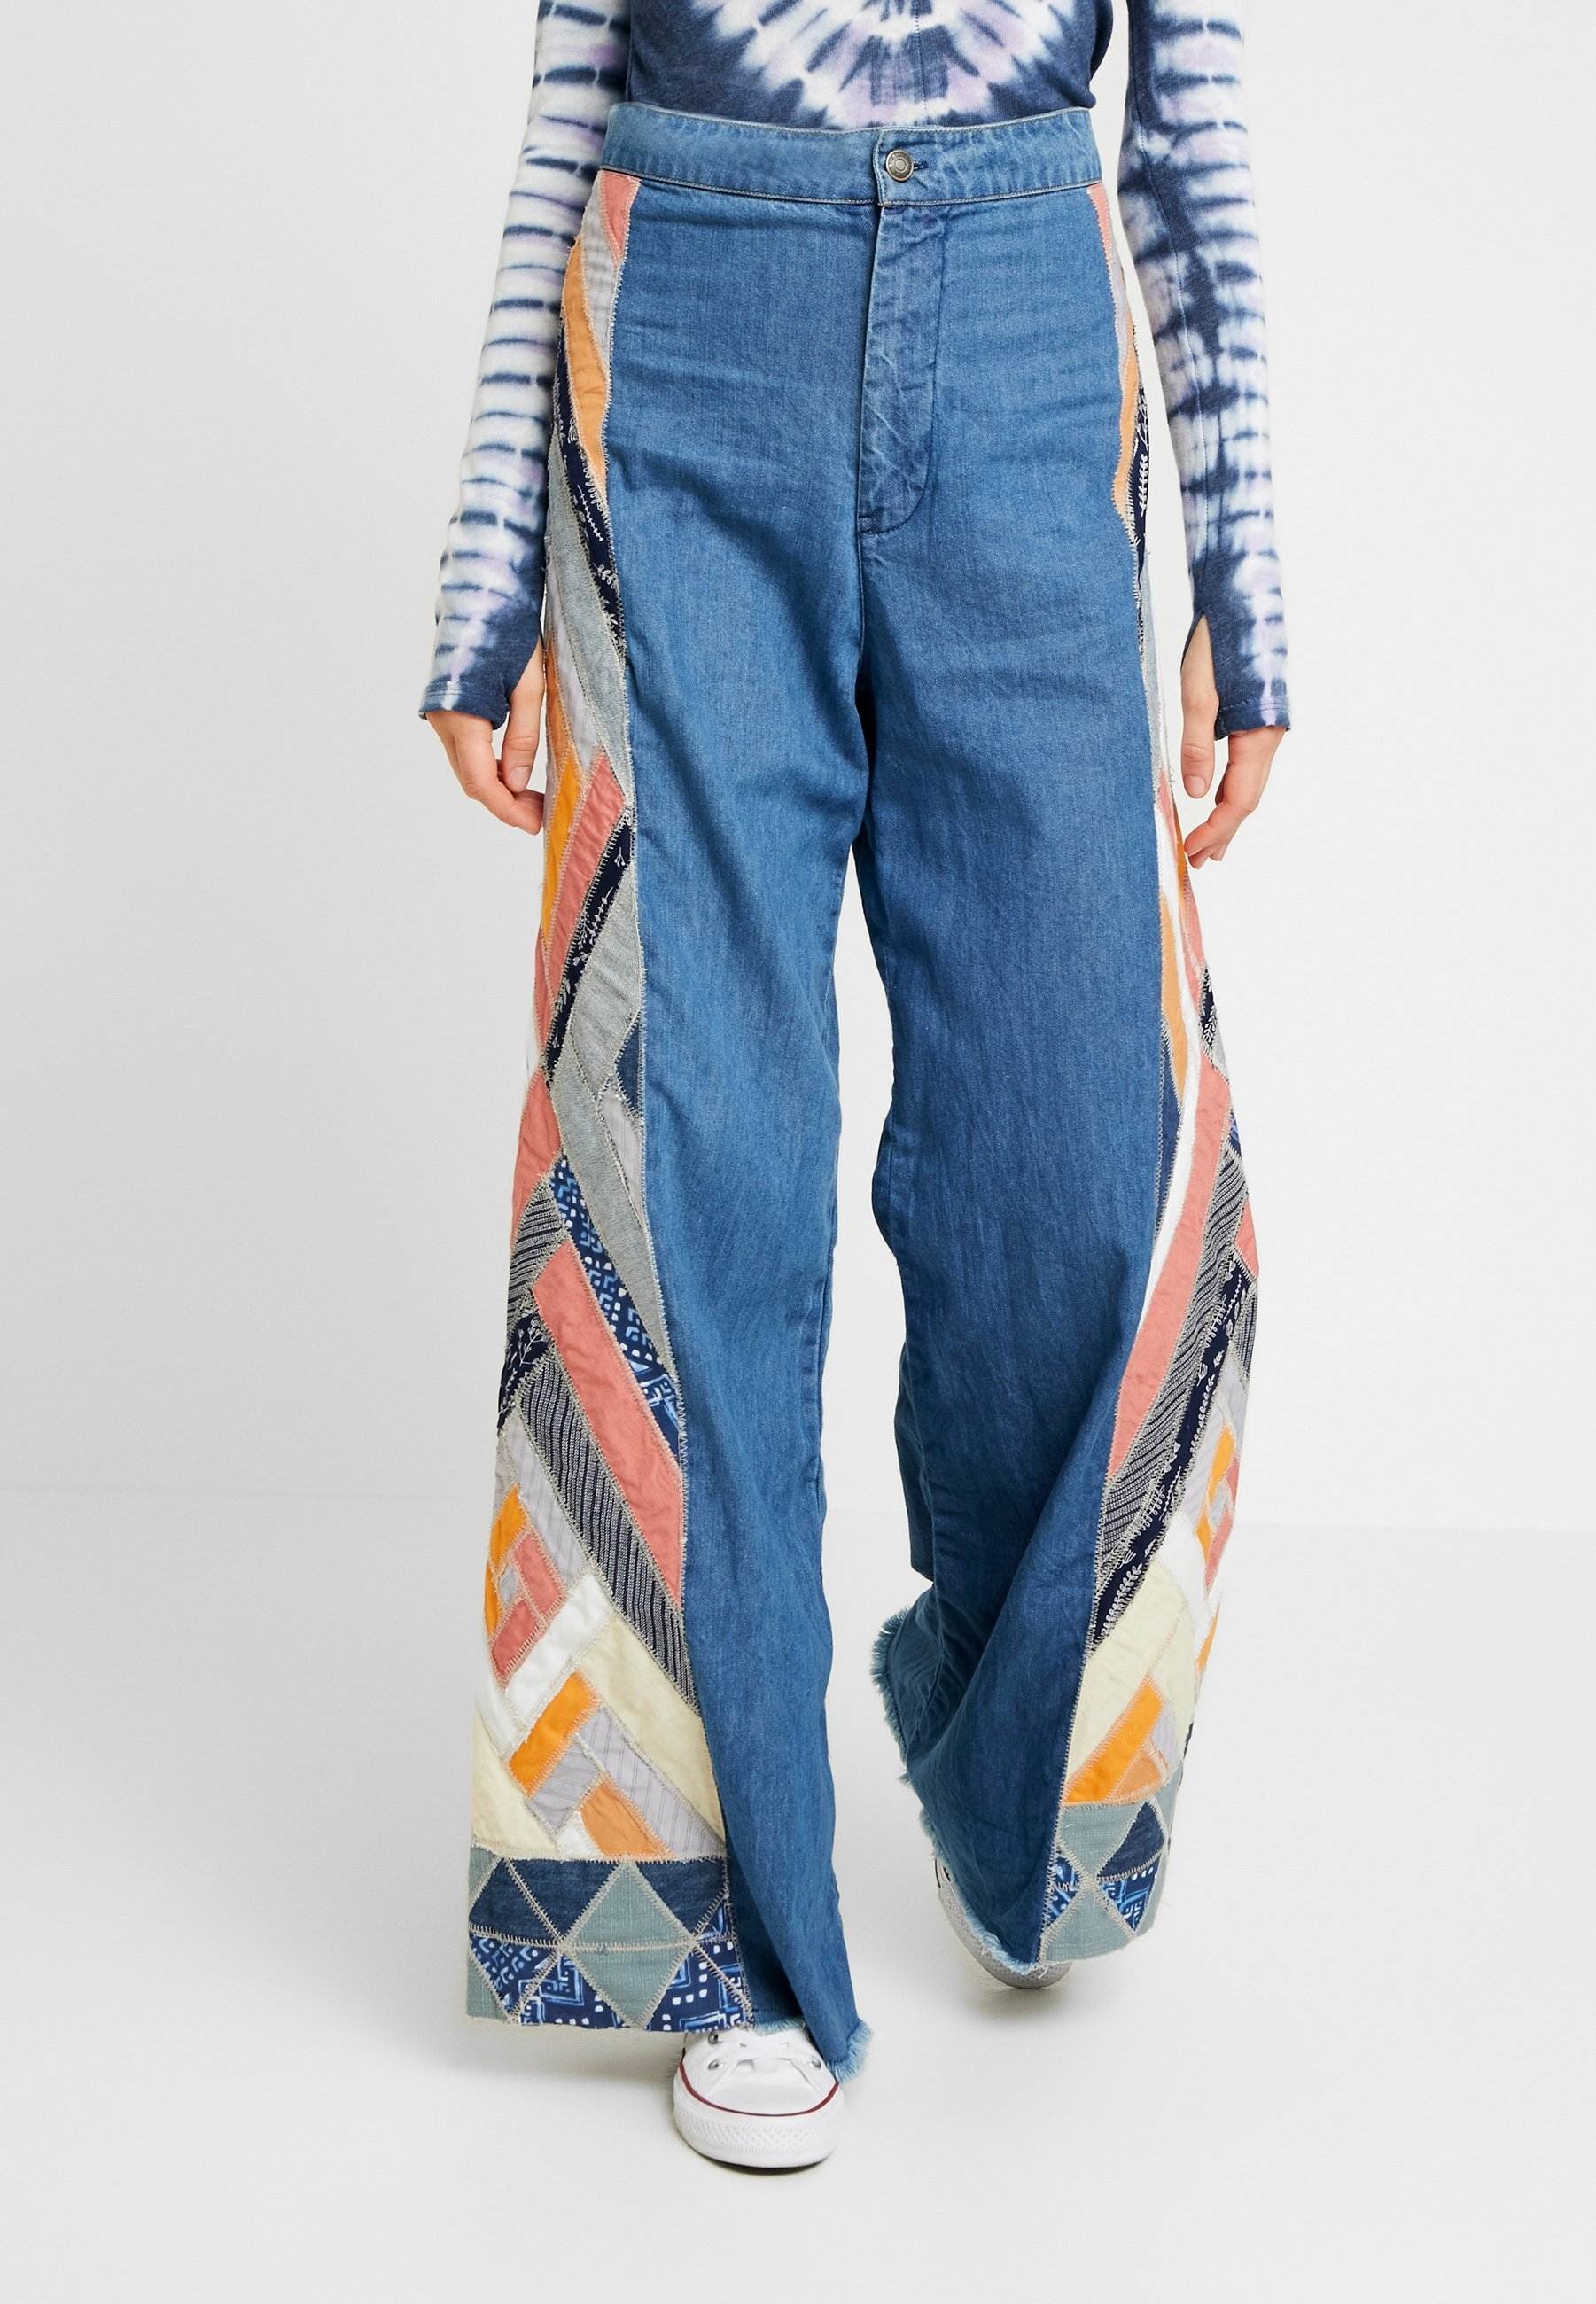 By Side Free People Stick Your PatcheJean Navy Flare mN80Ovnw